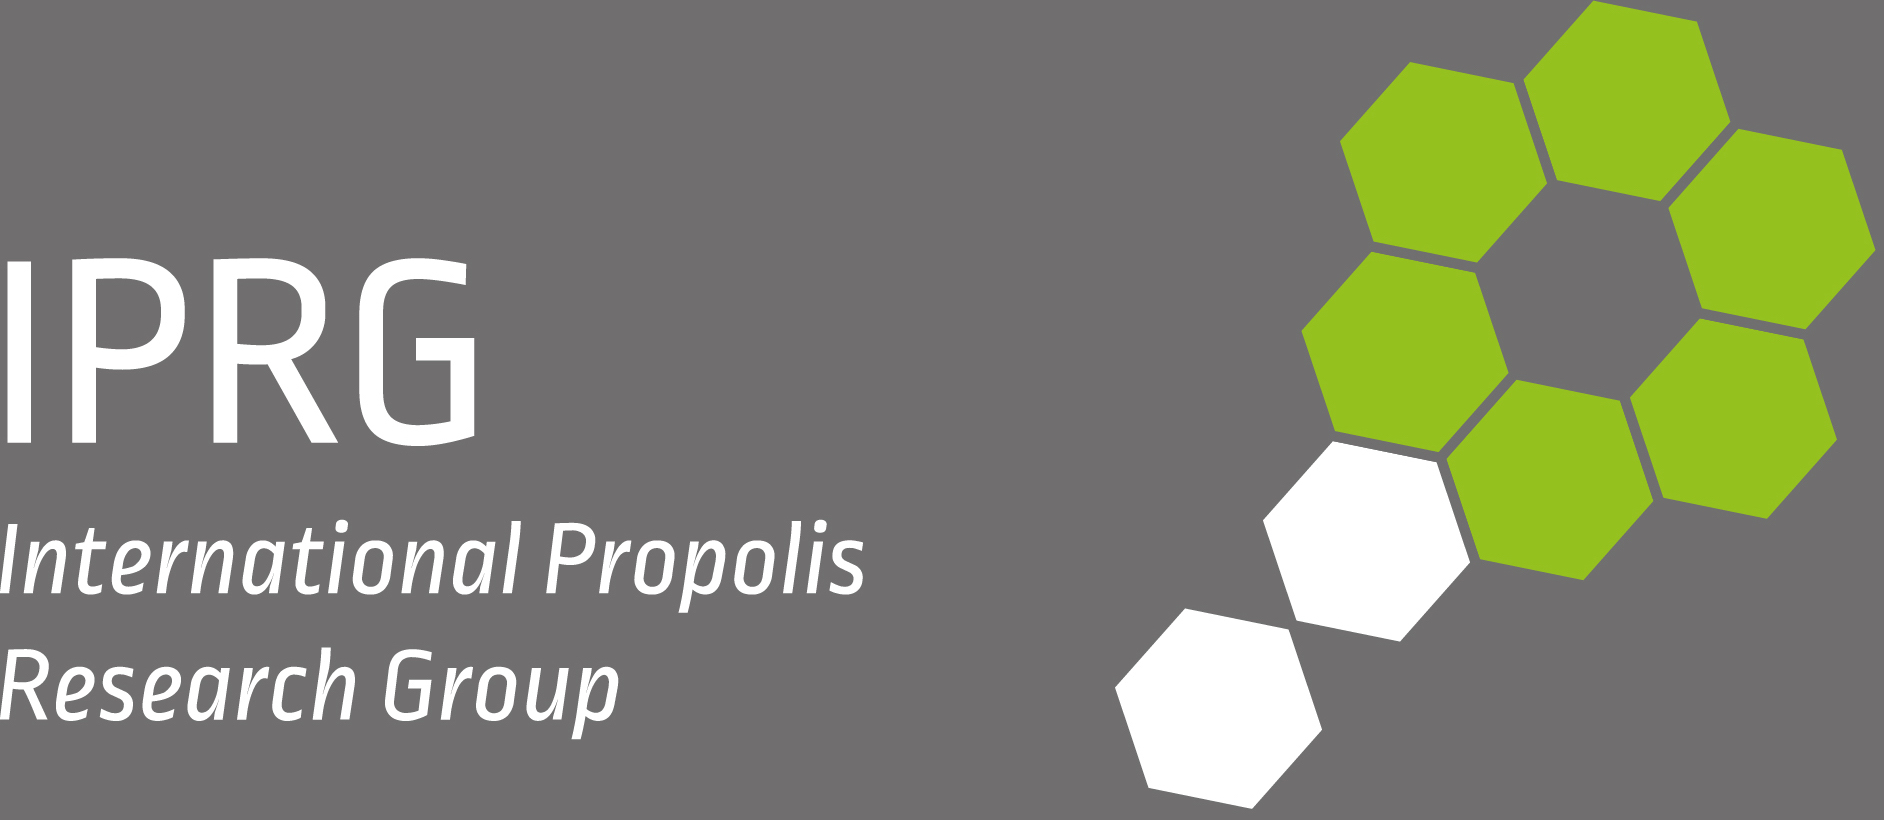 International Propolis Research Group